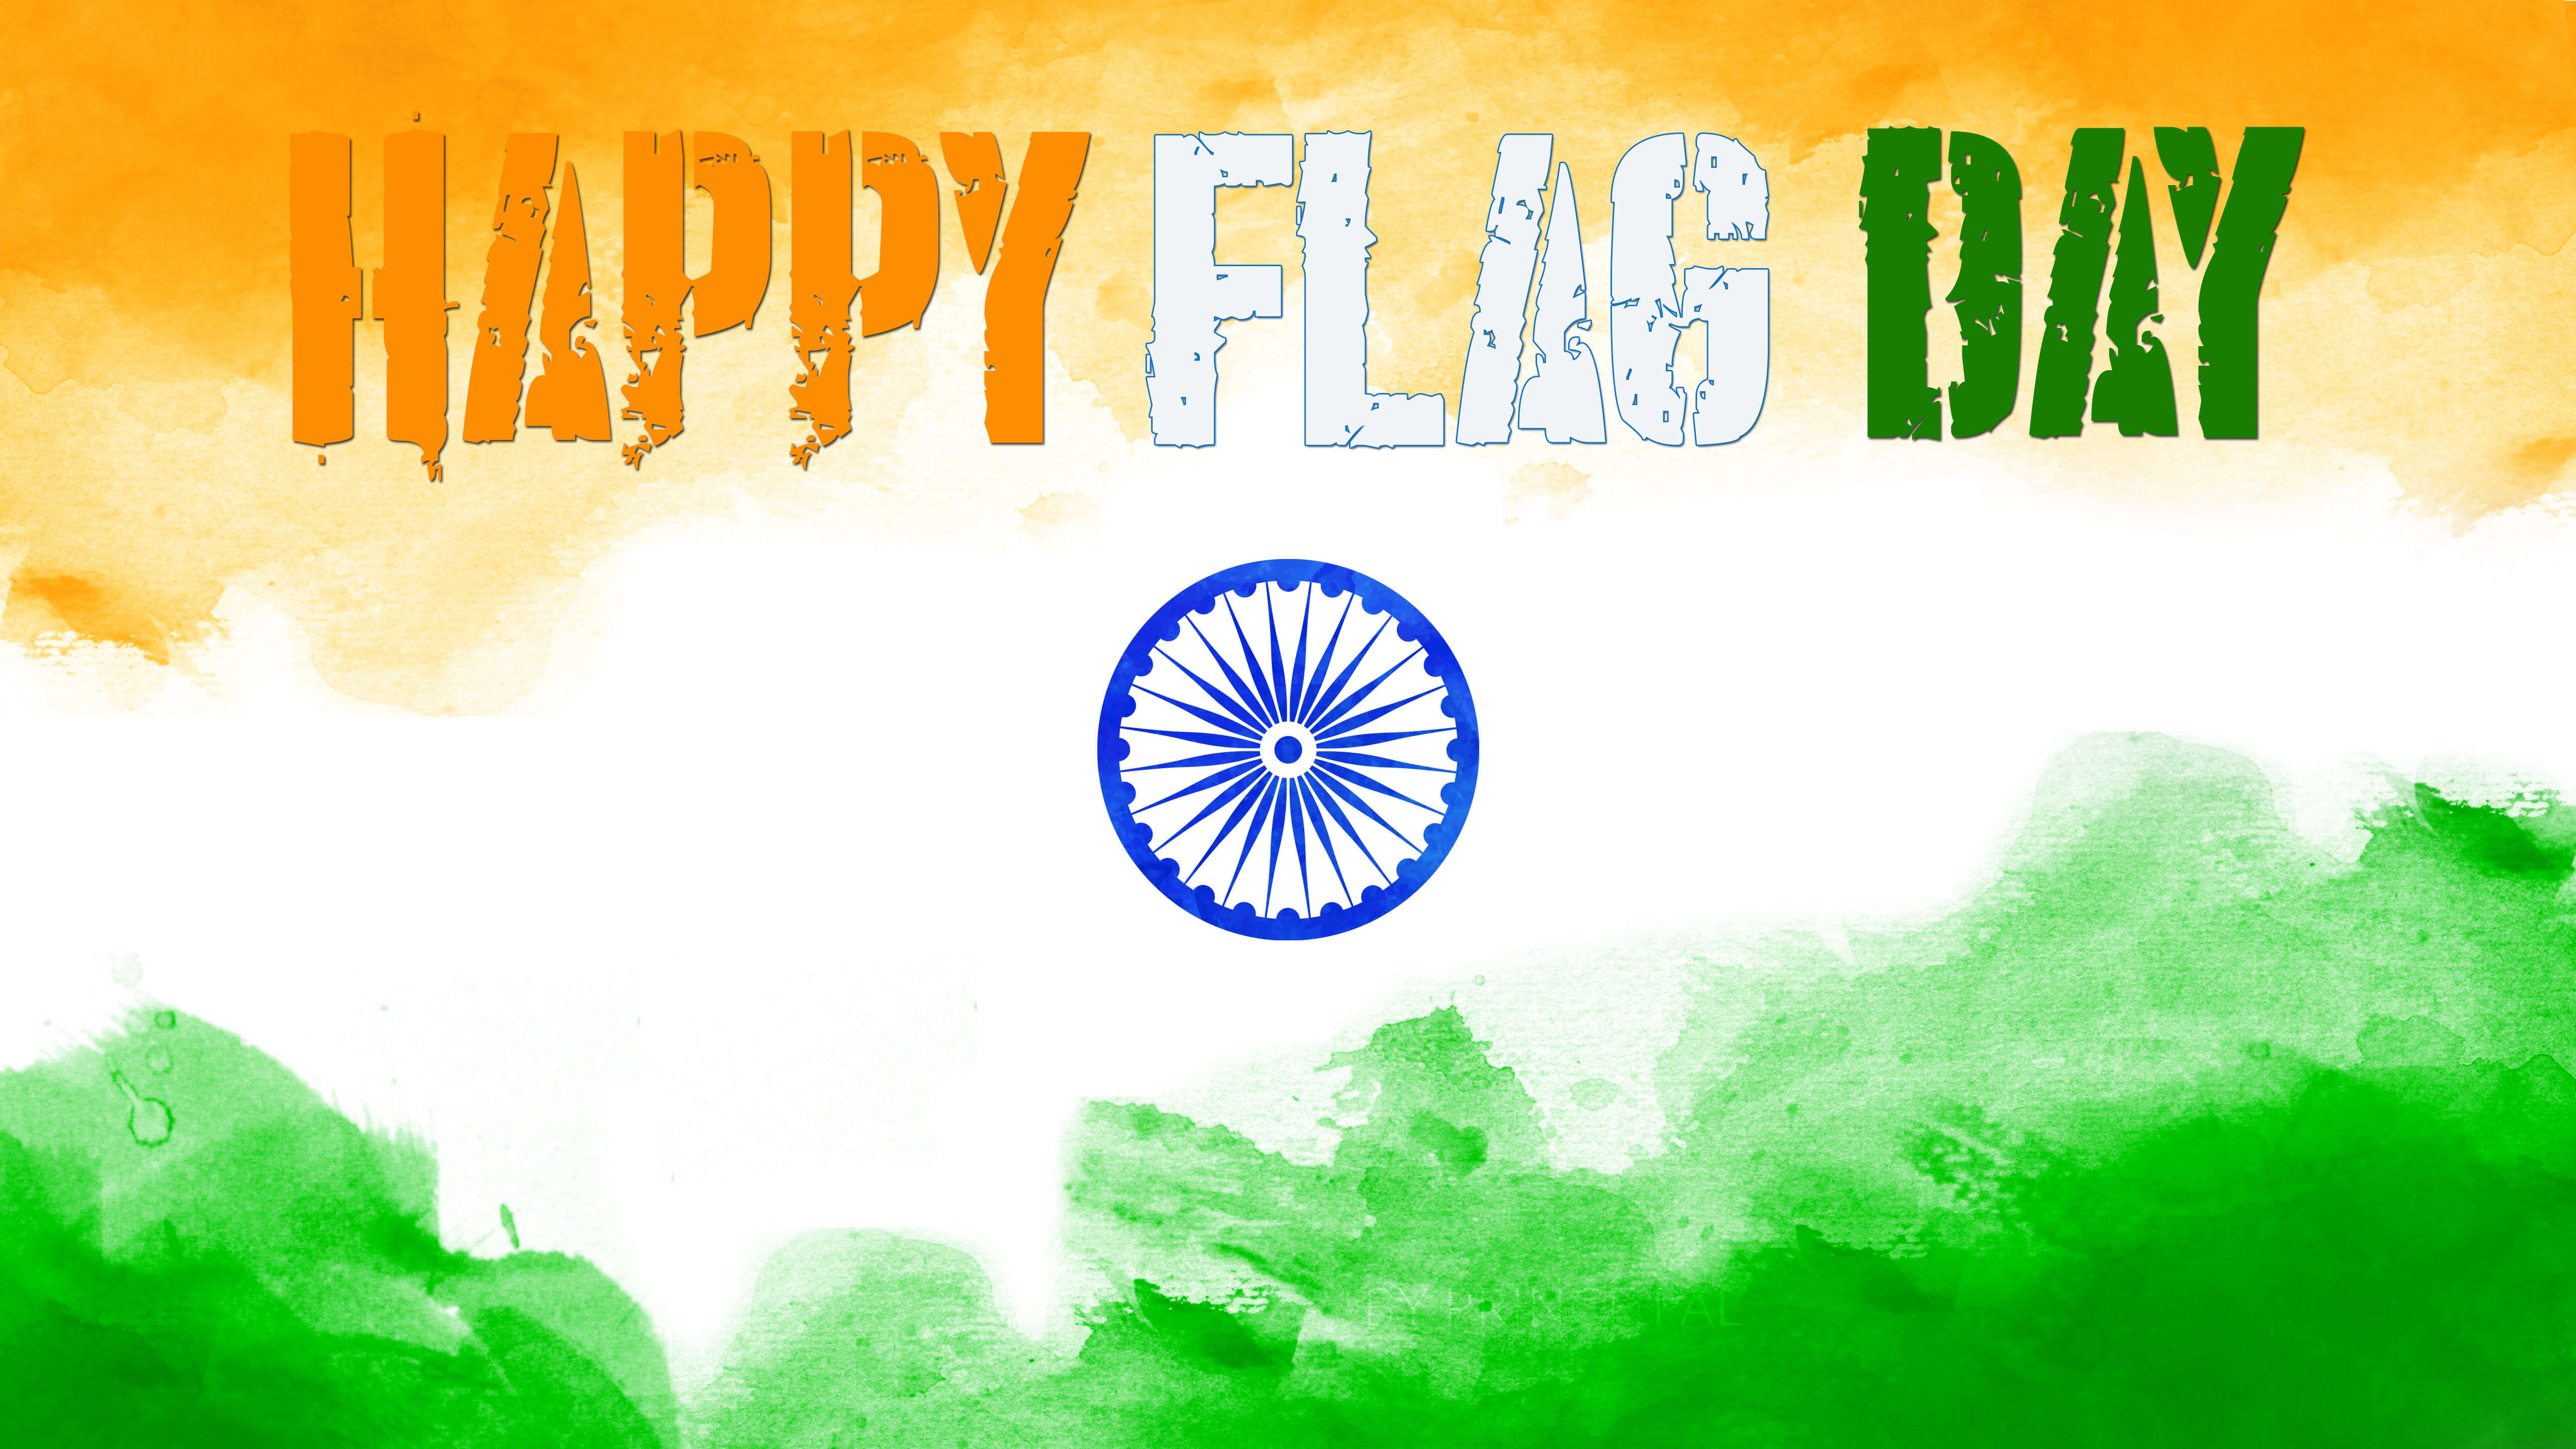 happy flag day india new hd background wallpaper